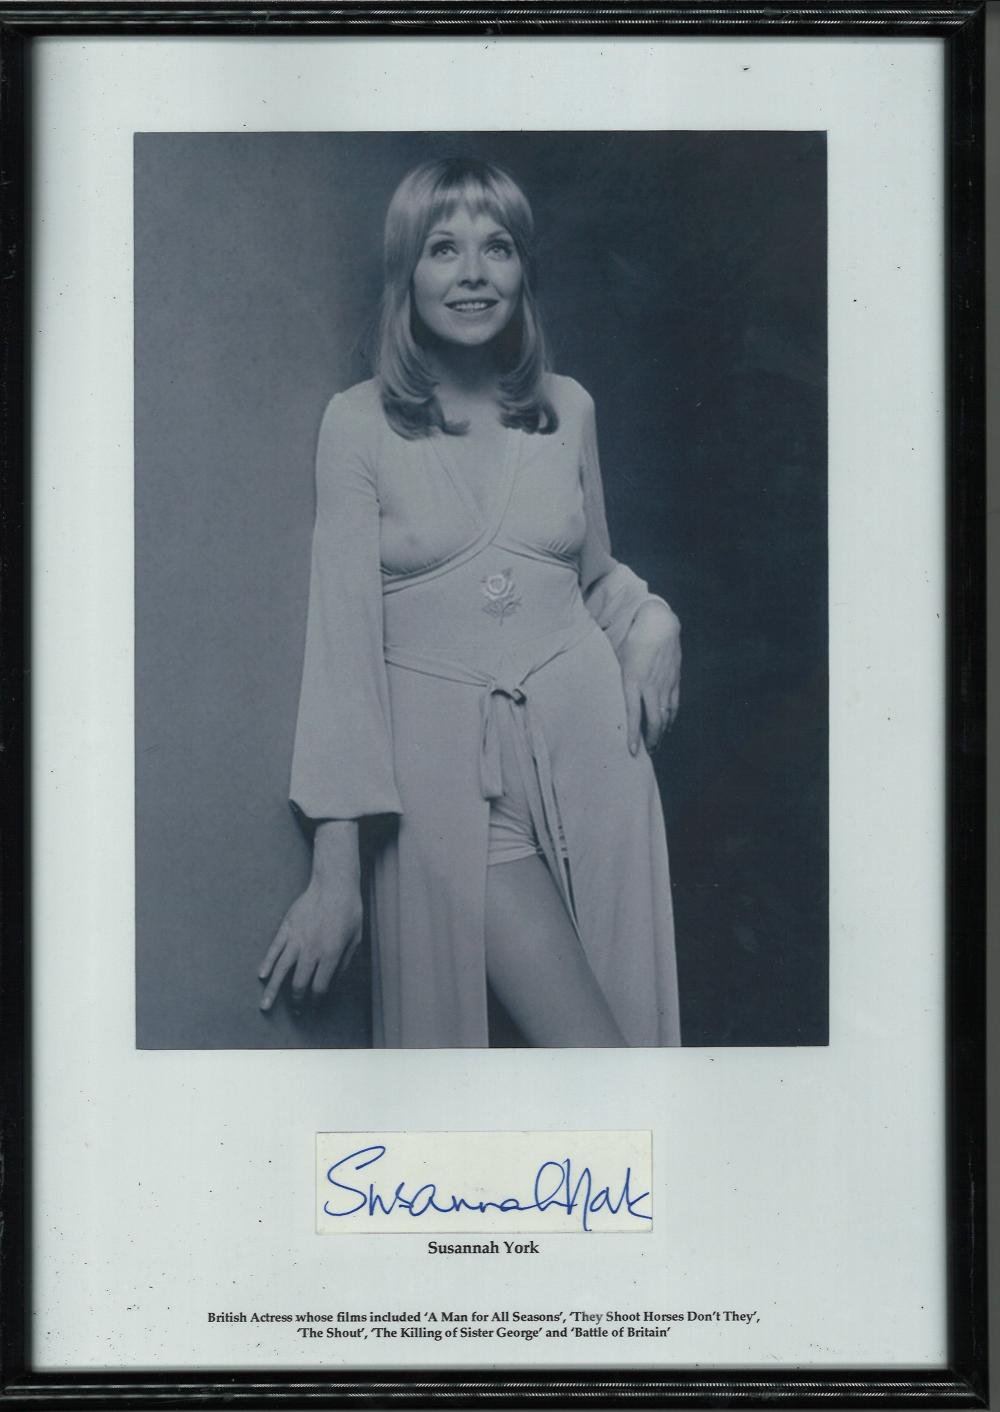 Susannah York signed Black/white portrait photograph mounted in a black frame of acclaimed British